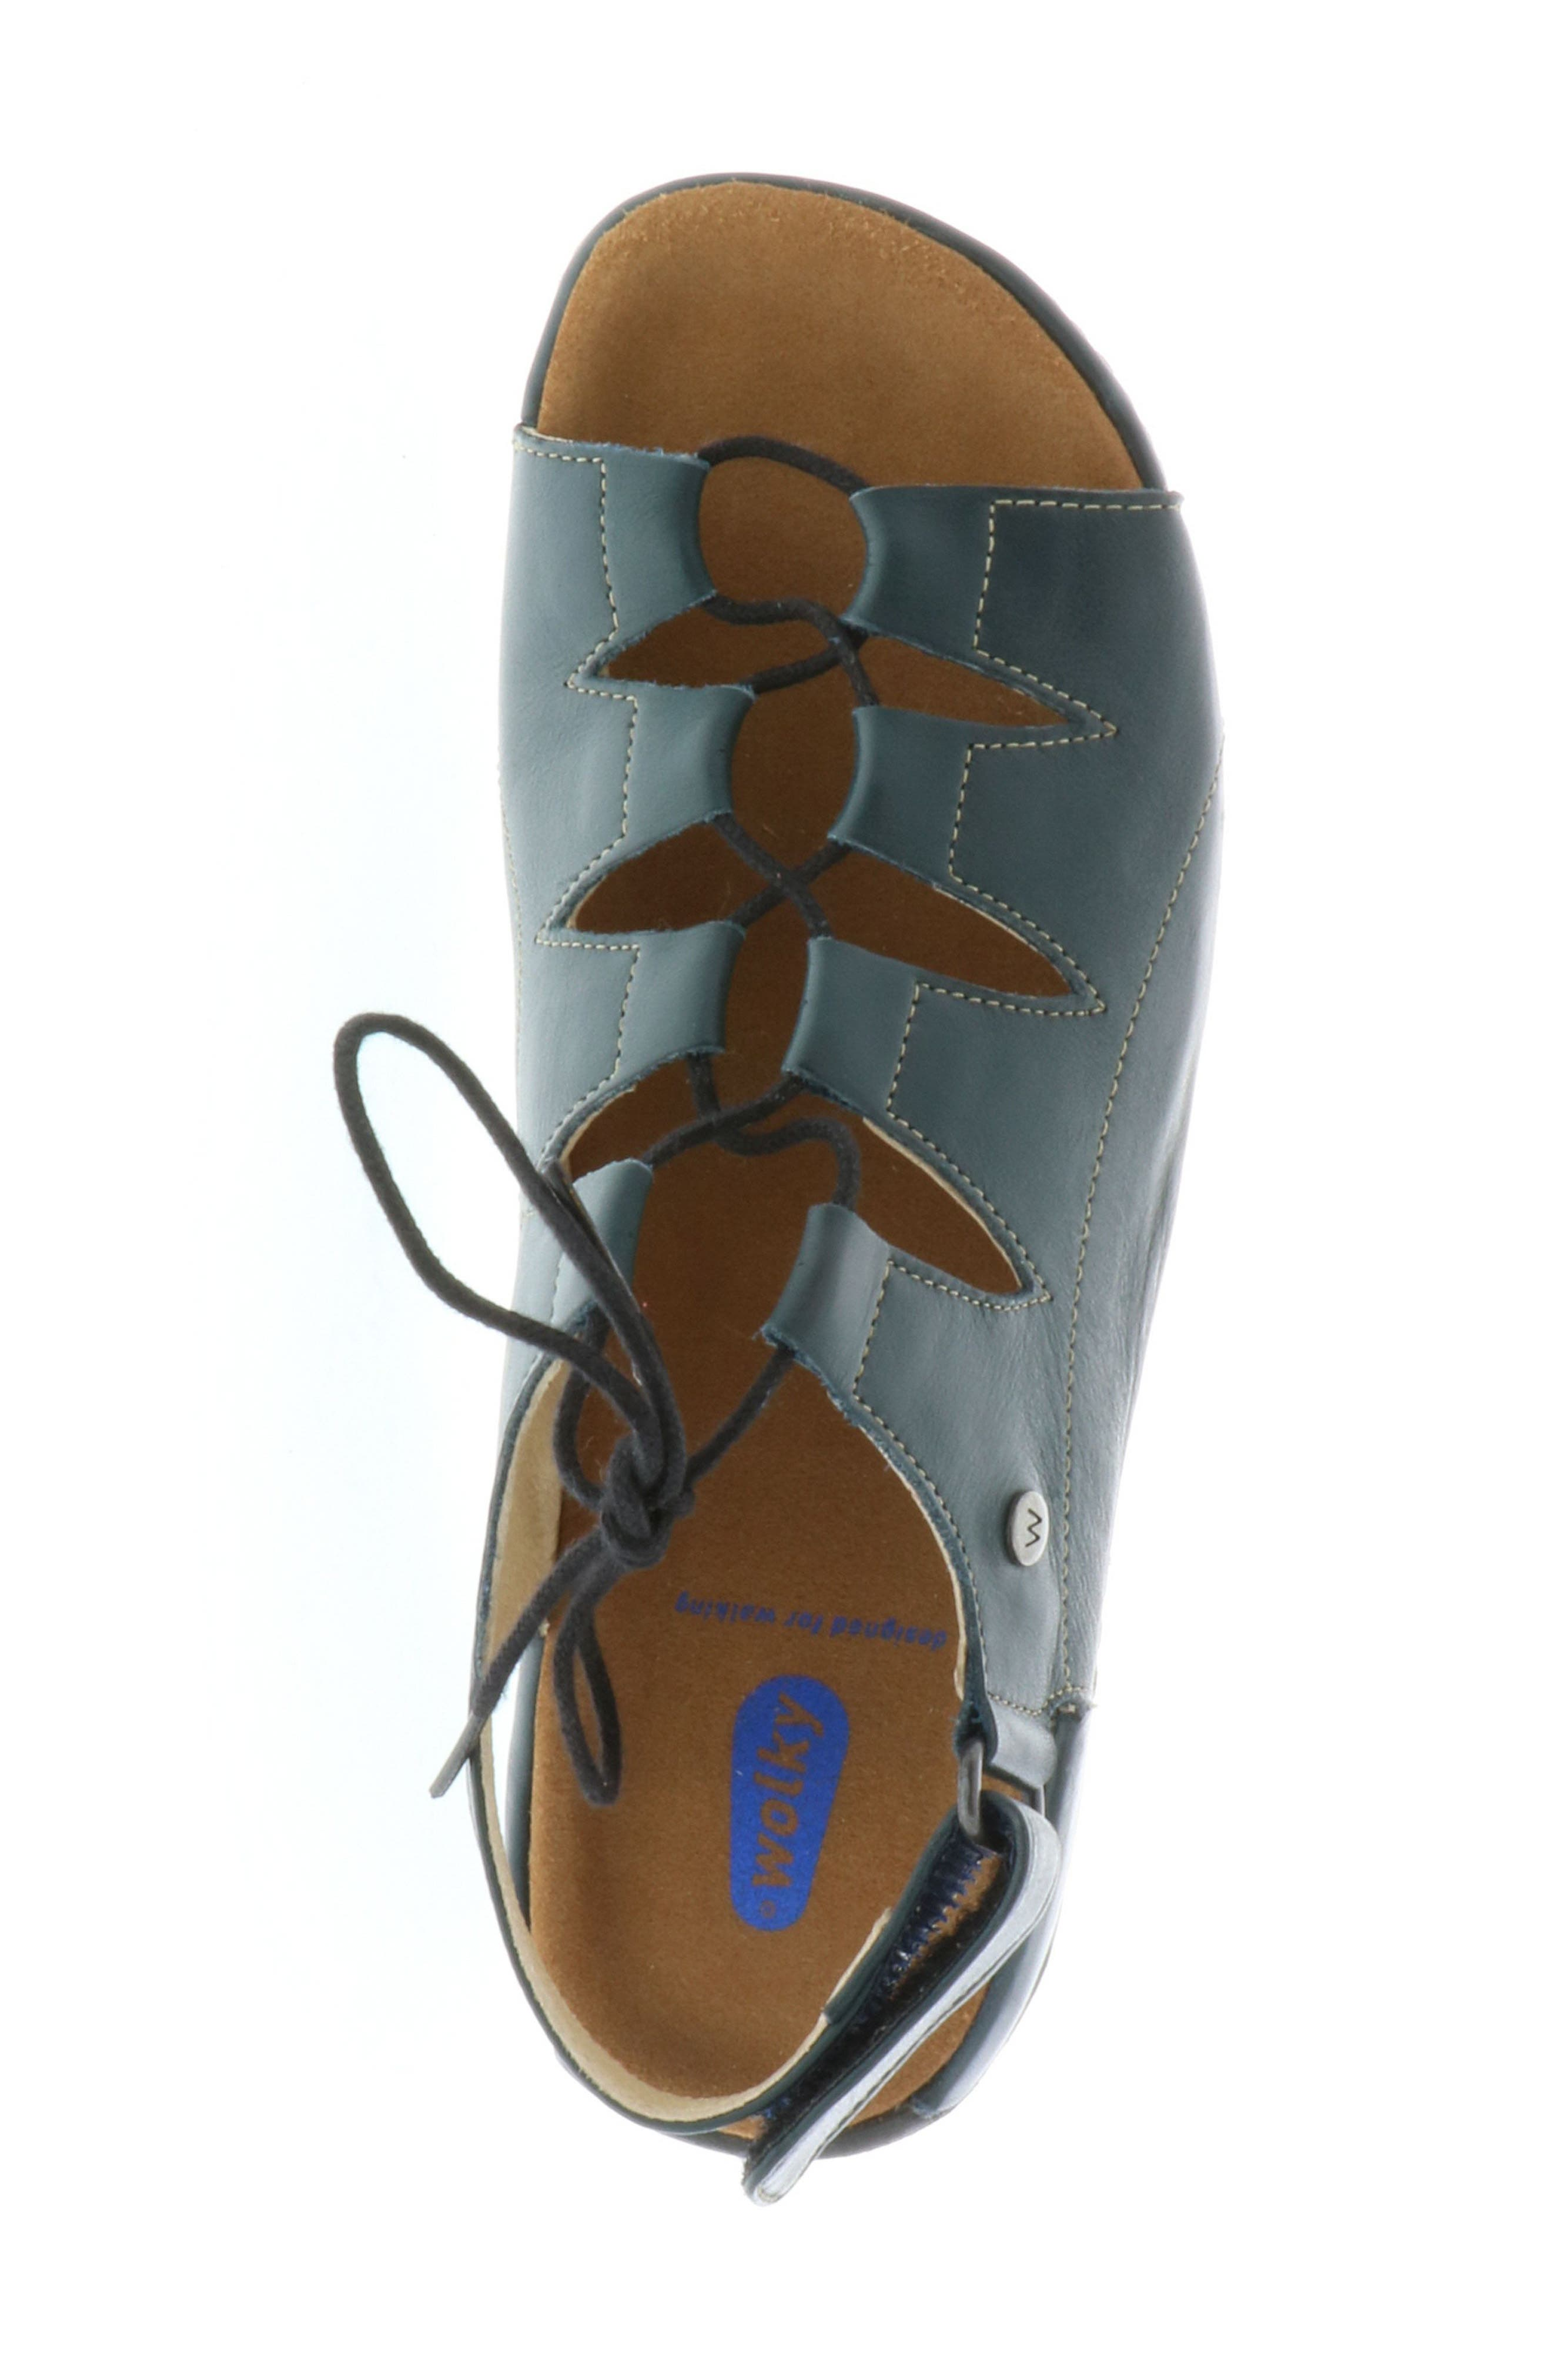 Kite Lace-Up Sandal,                             Alternate thumbnail 4, color,                             Navy Leather